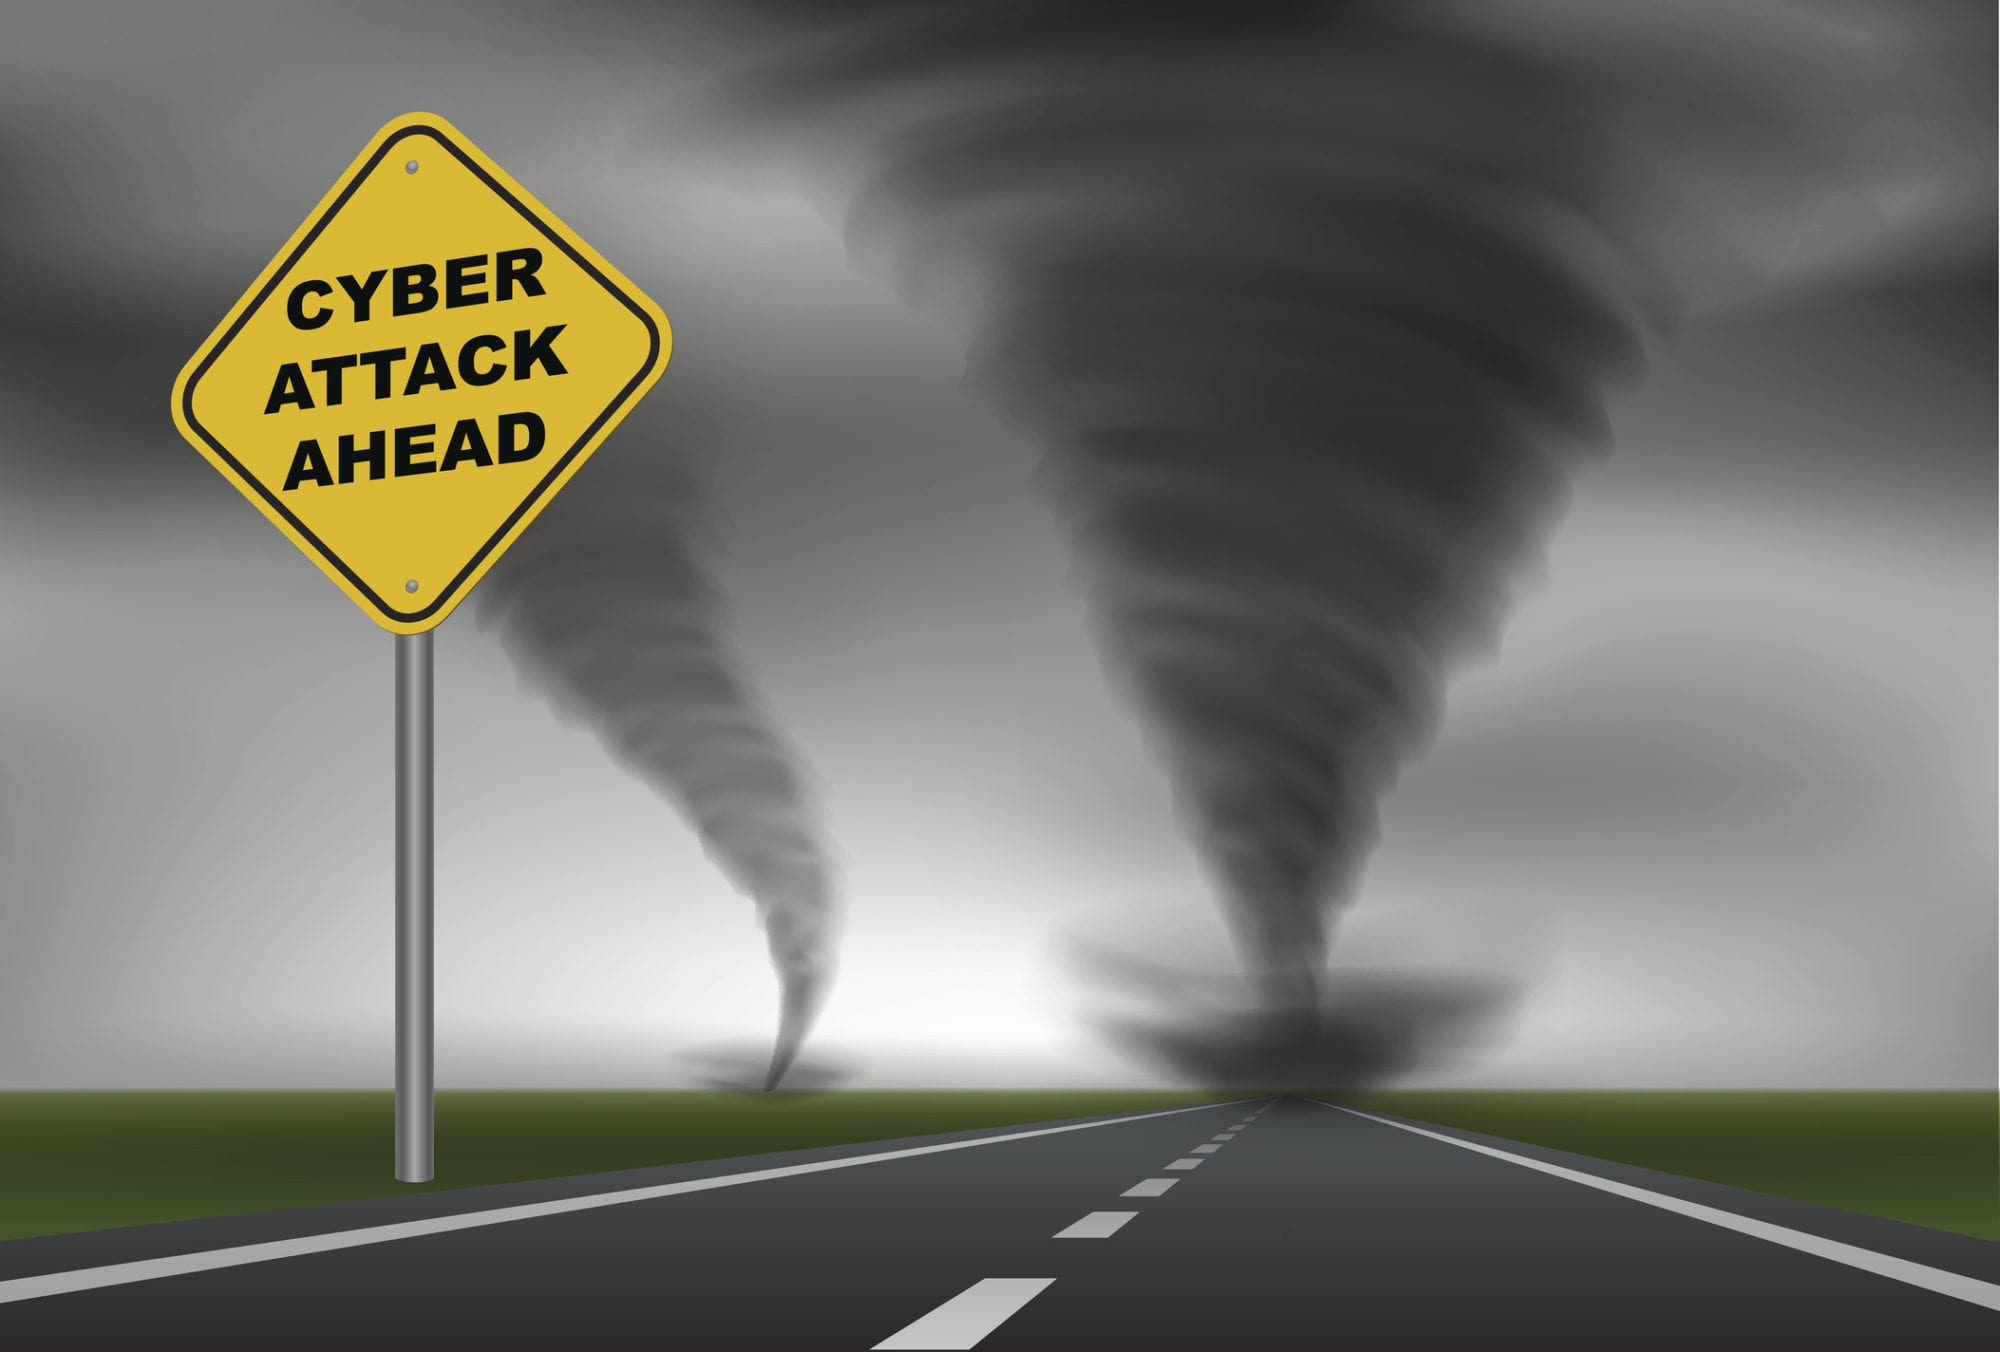 Convince your board - cyber attack prevention is better than cure